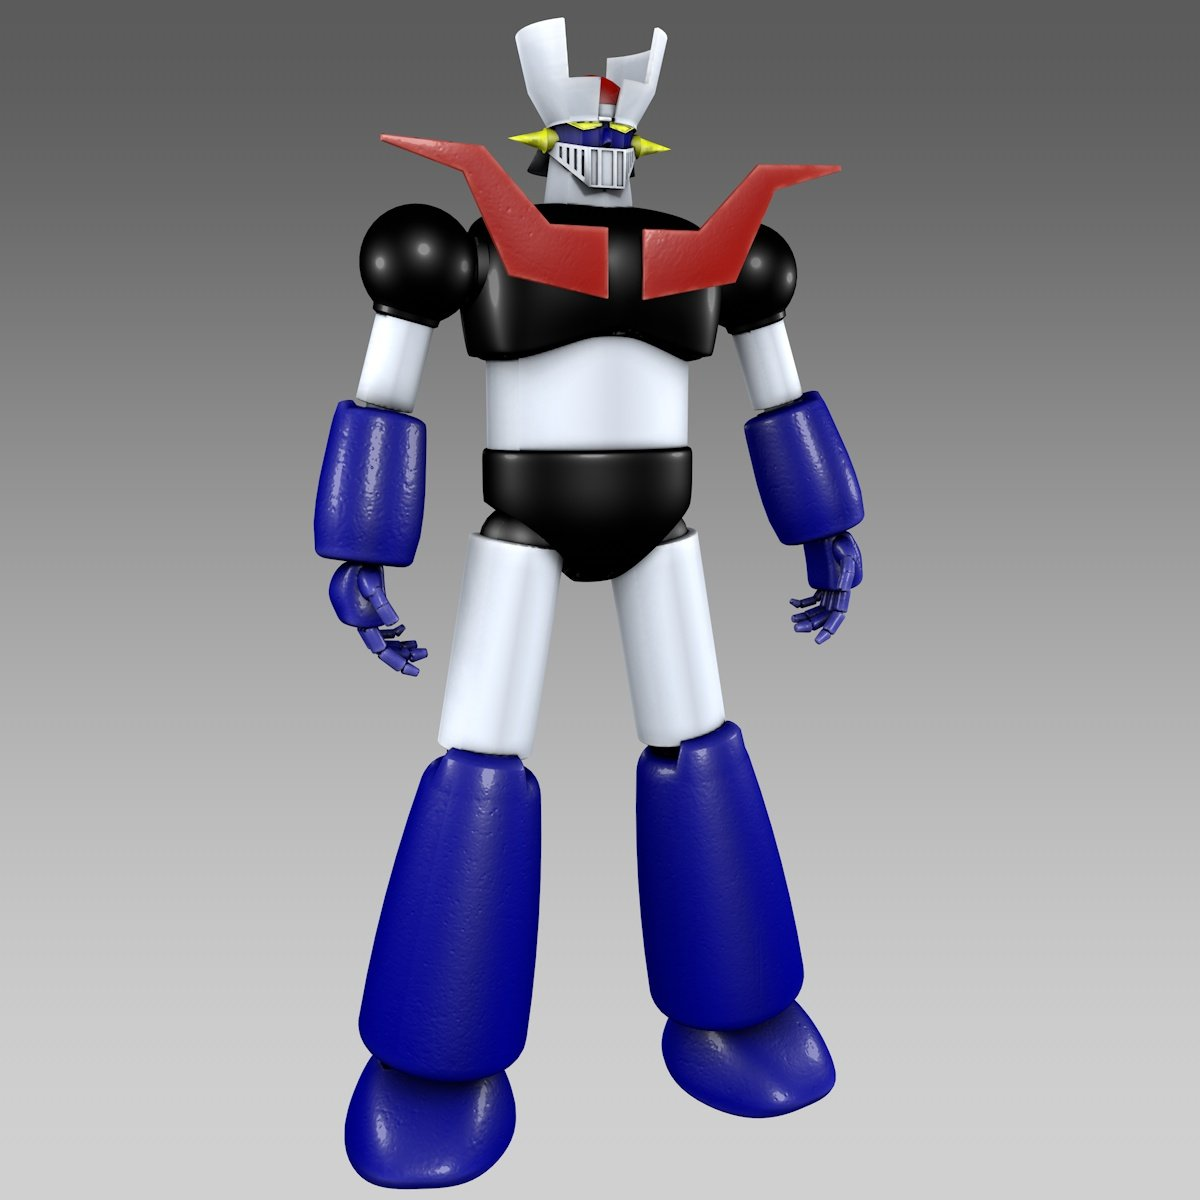 Low poly mazinger z show and tell talk manufacturing | 3d hubs.